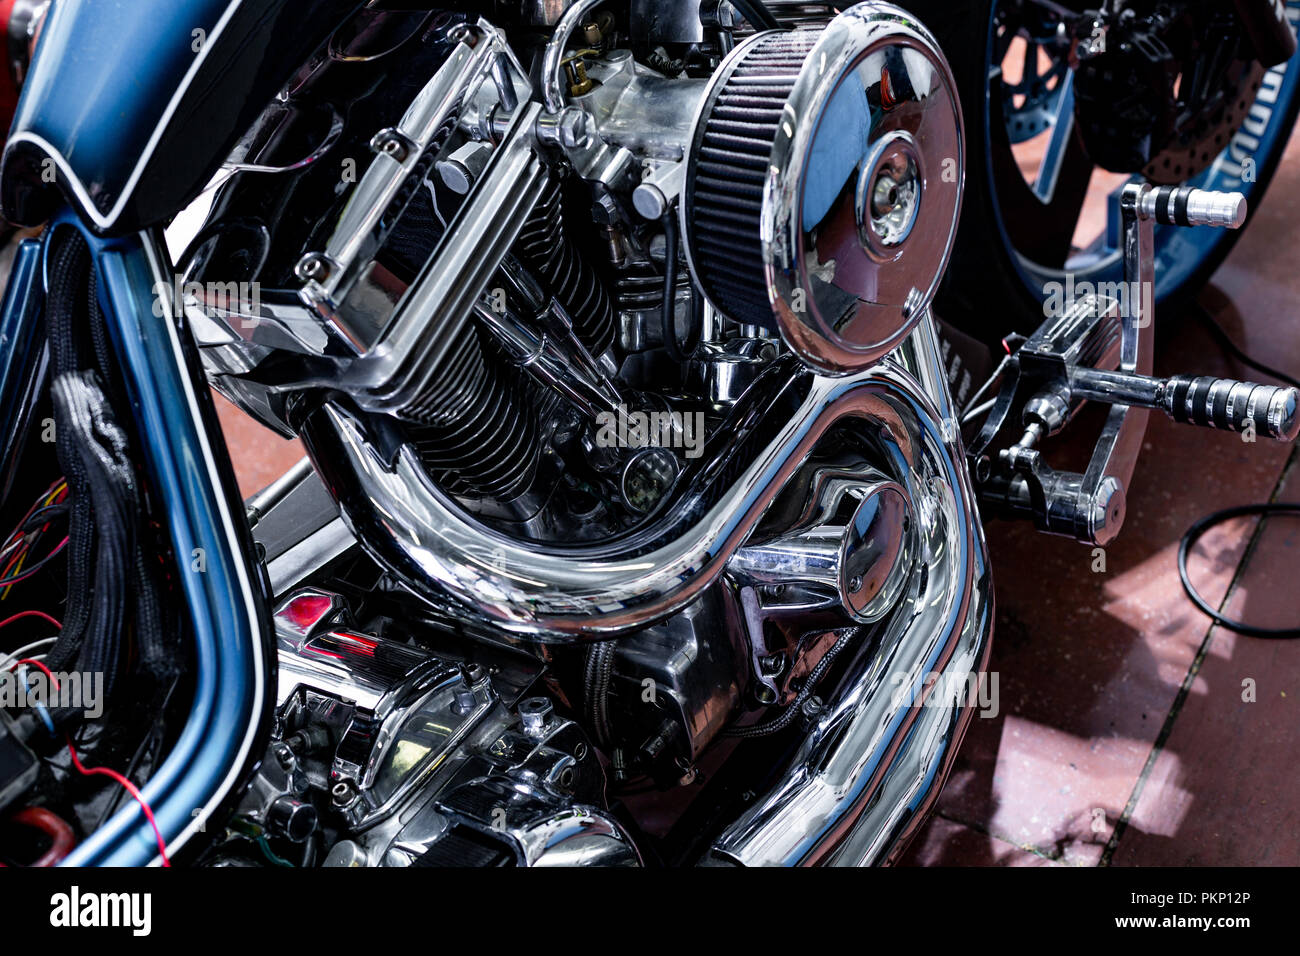 Engine close up shot of beautiful and custom made motorcycle - Stock Image